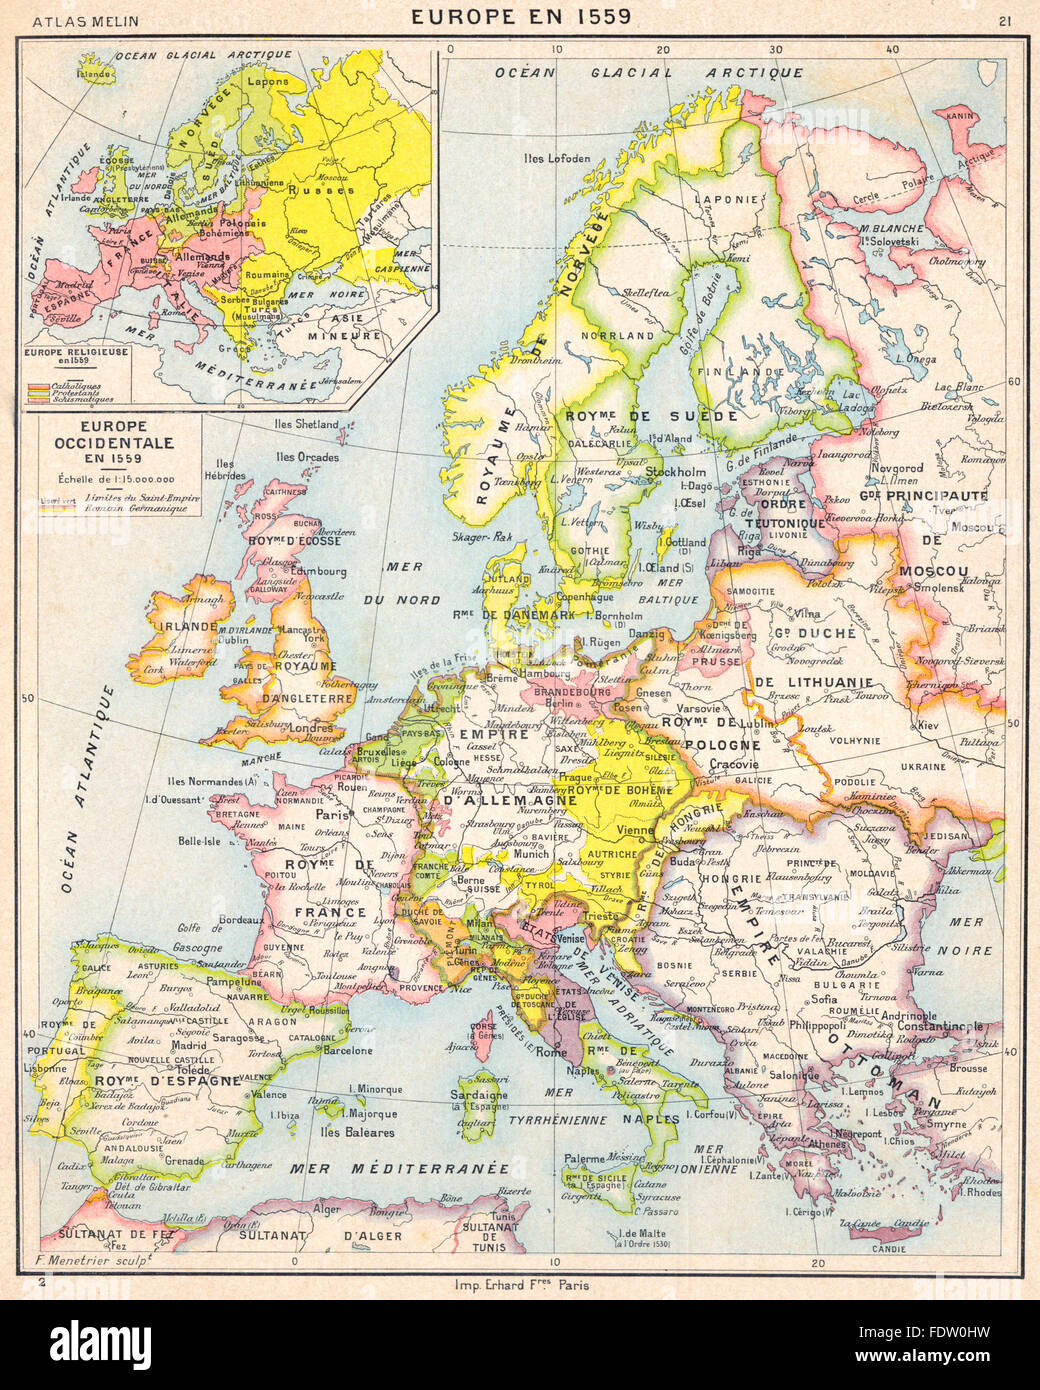 Europe Europe Occidentale En 1559 Inset Map Of Europe Religieuse